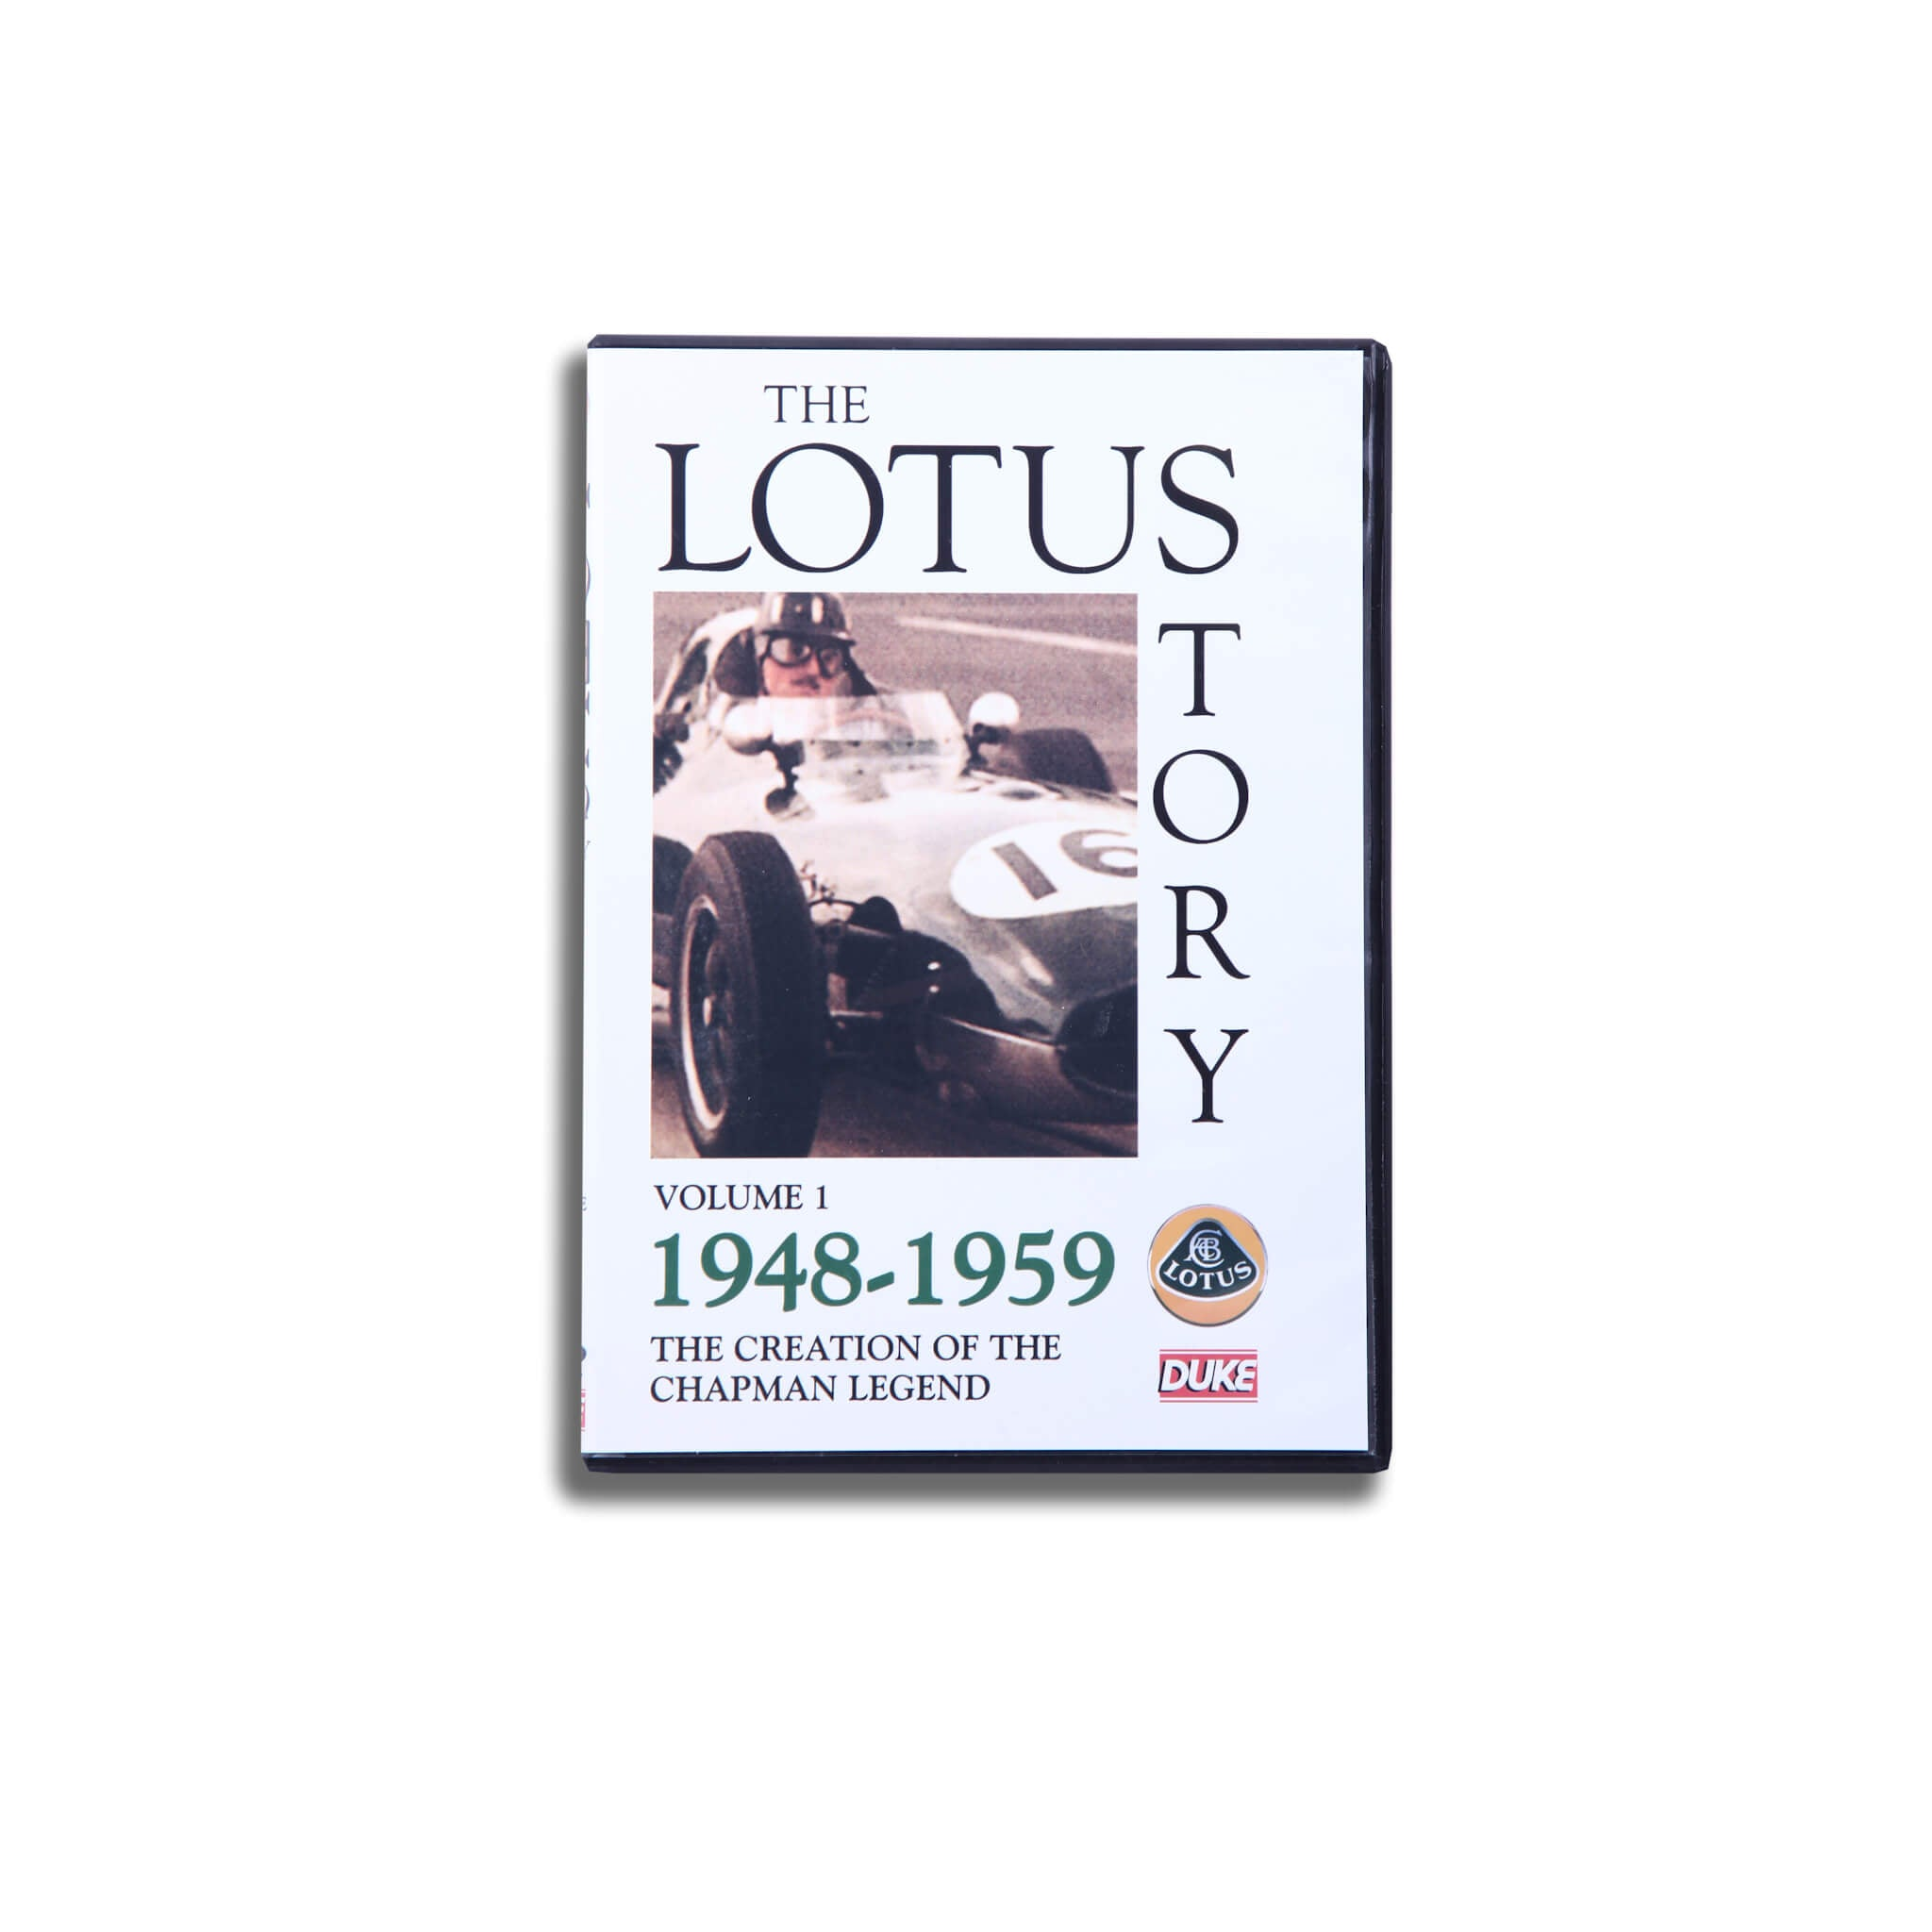 The Lotus Story Vol. 1-4 Dvd Box Set Dvd